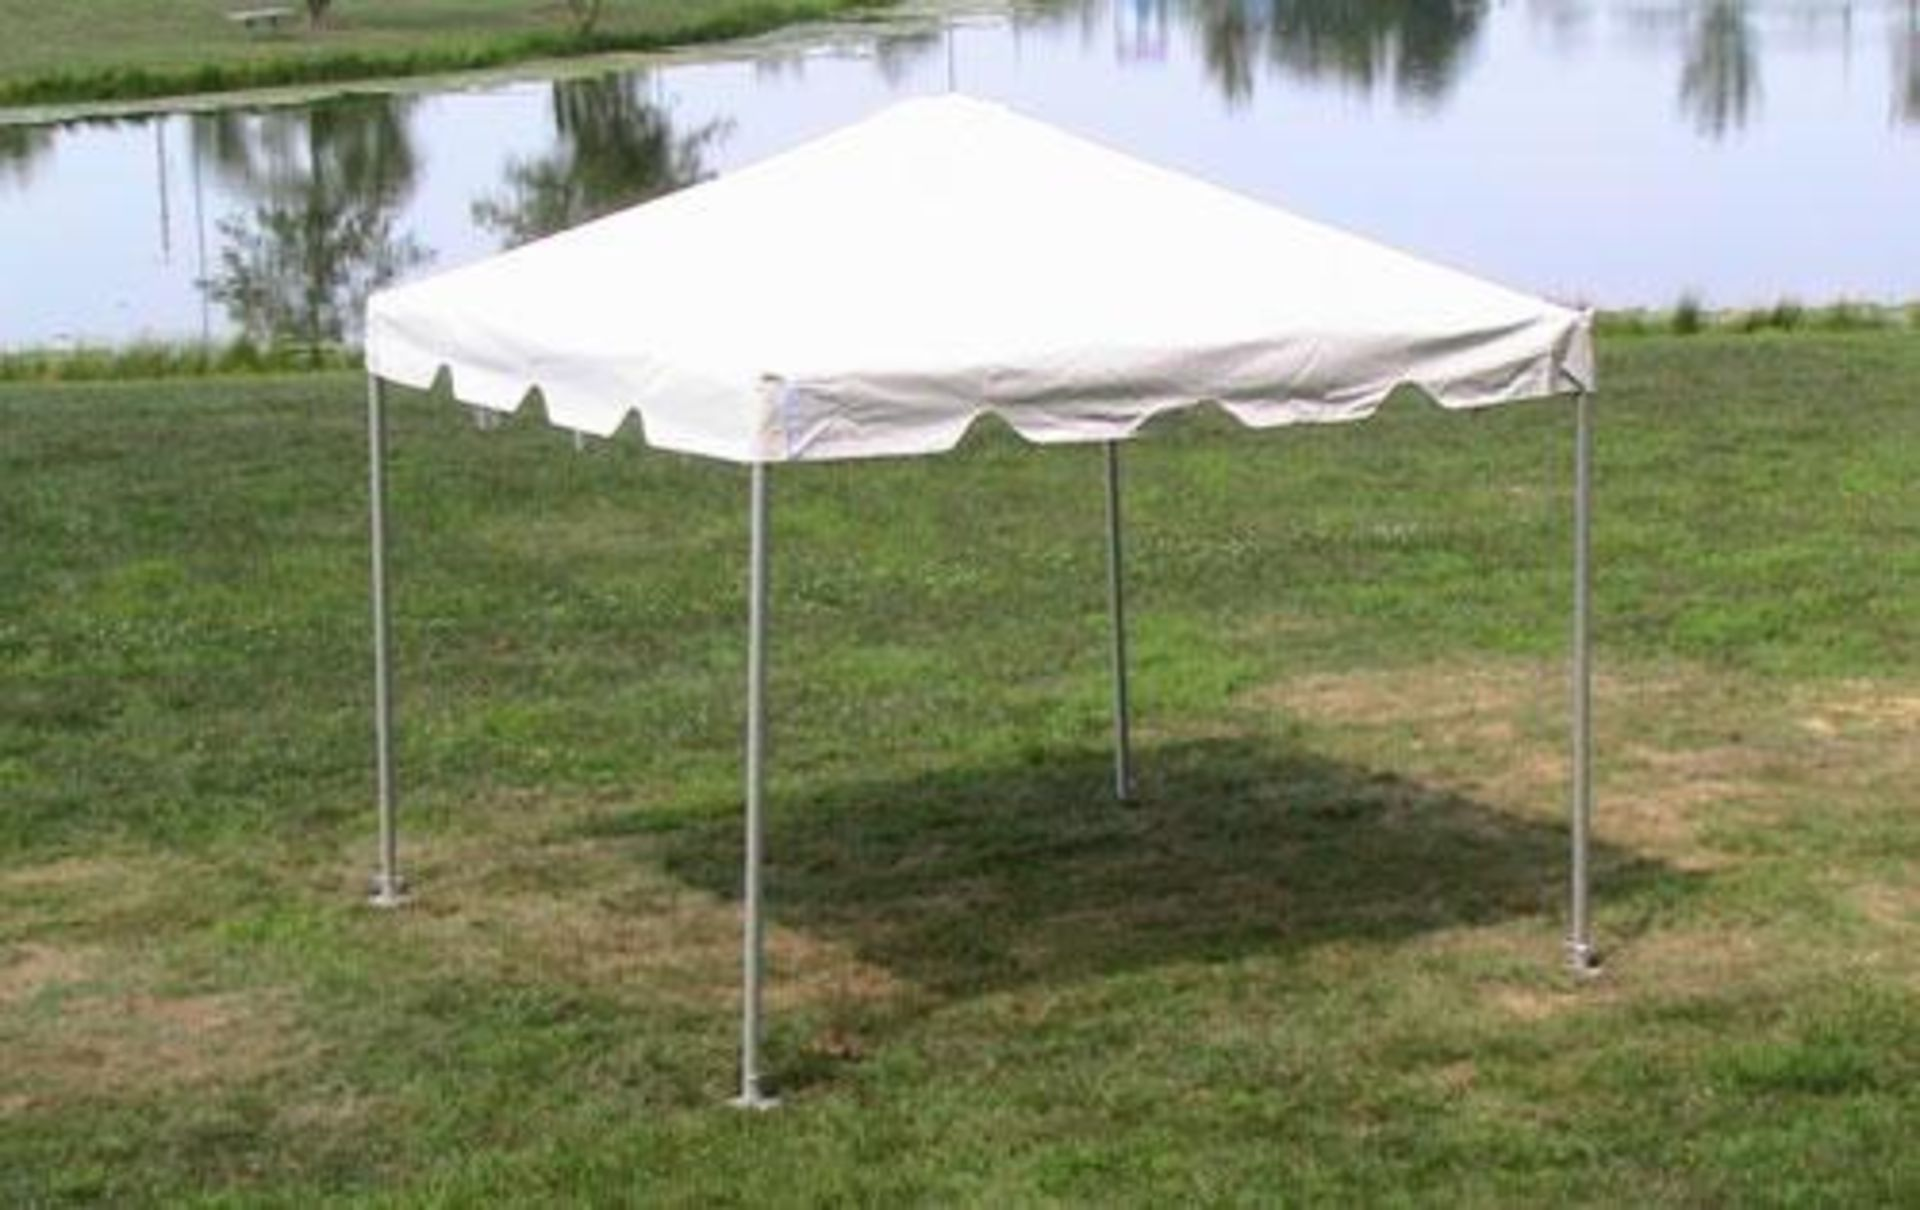 Lot 53 - 10 ft. x 10 ft. Frame Tents - Complete(sidewalls and rain gutters lots available)